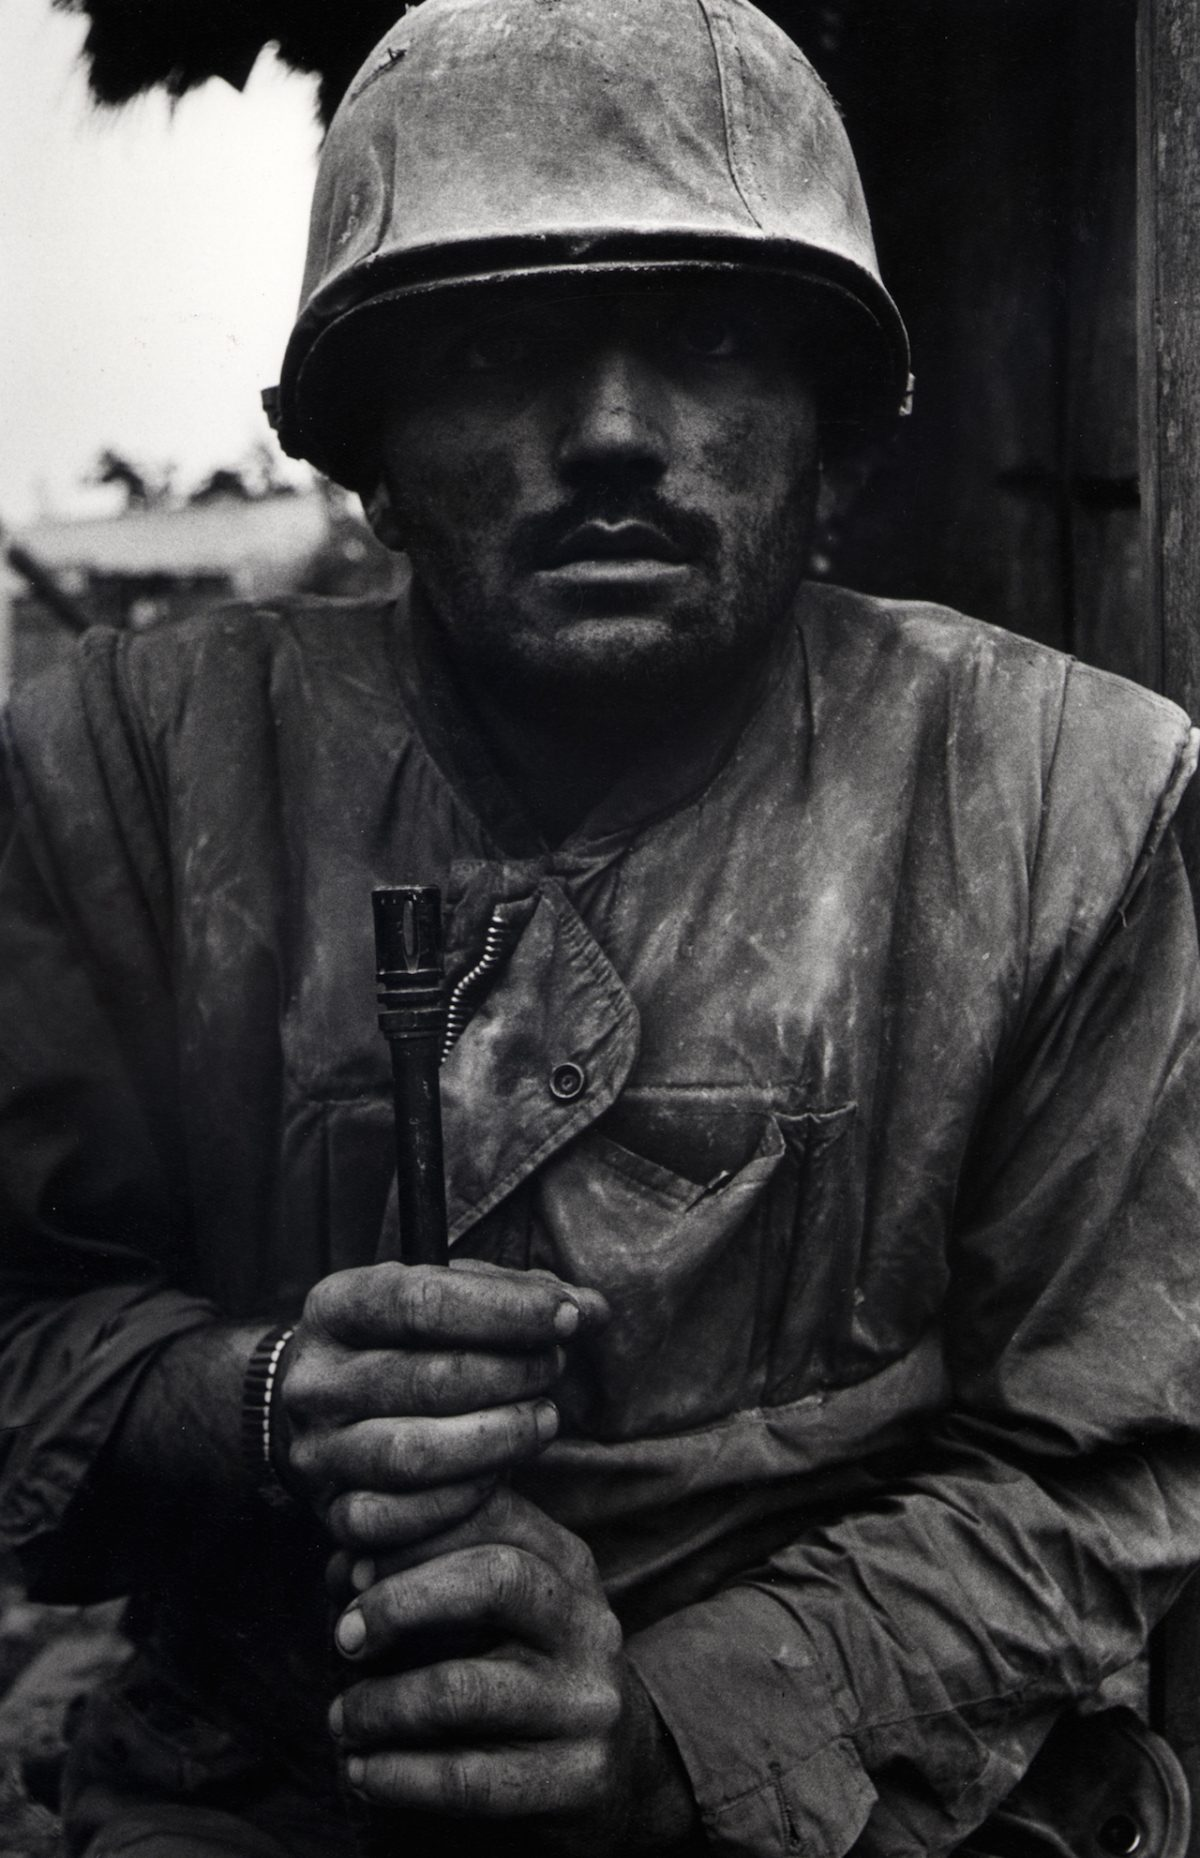 Shell Shocked US Marine, Hue, Vietnam, 1968